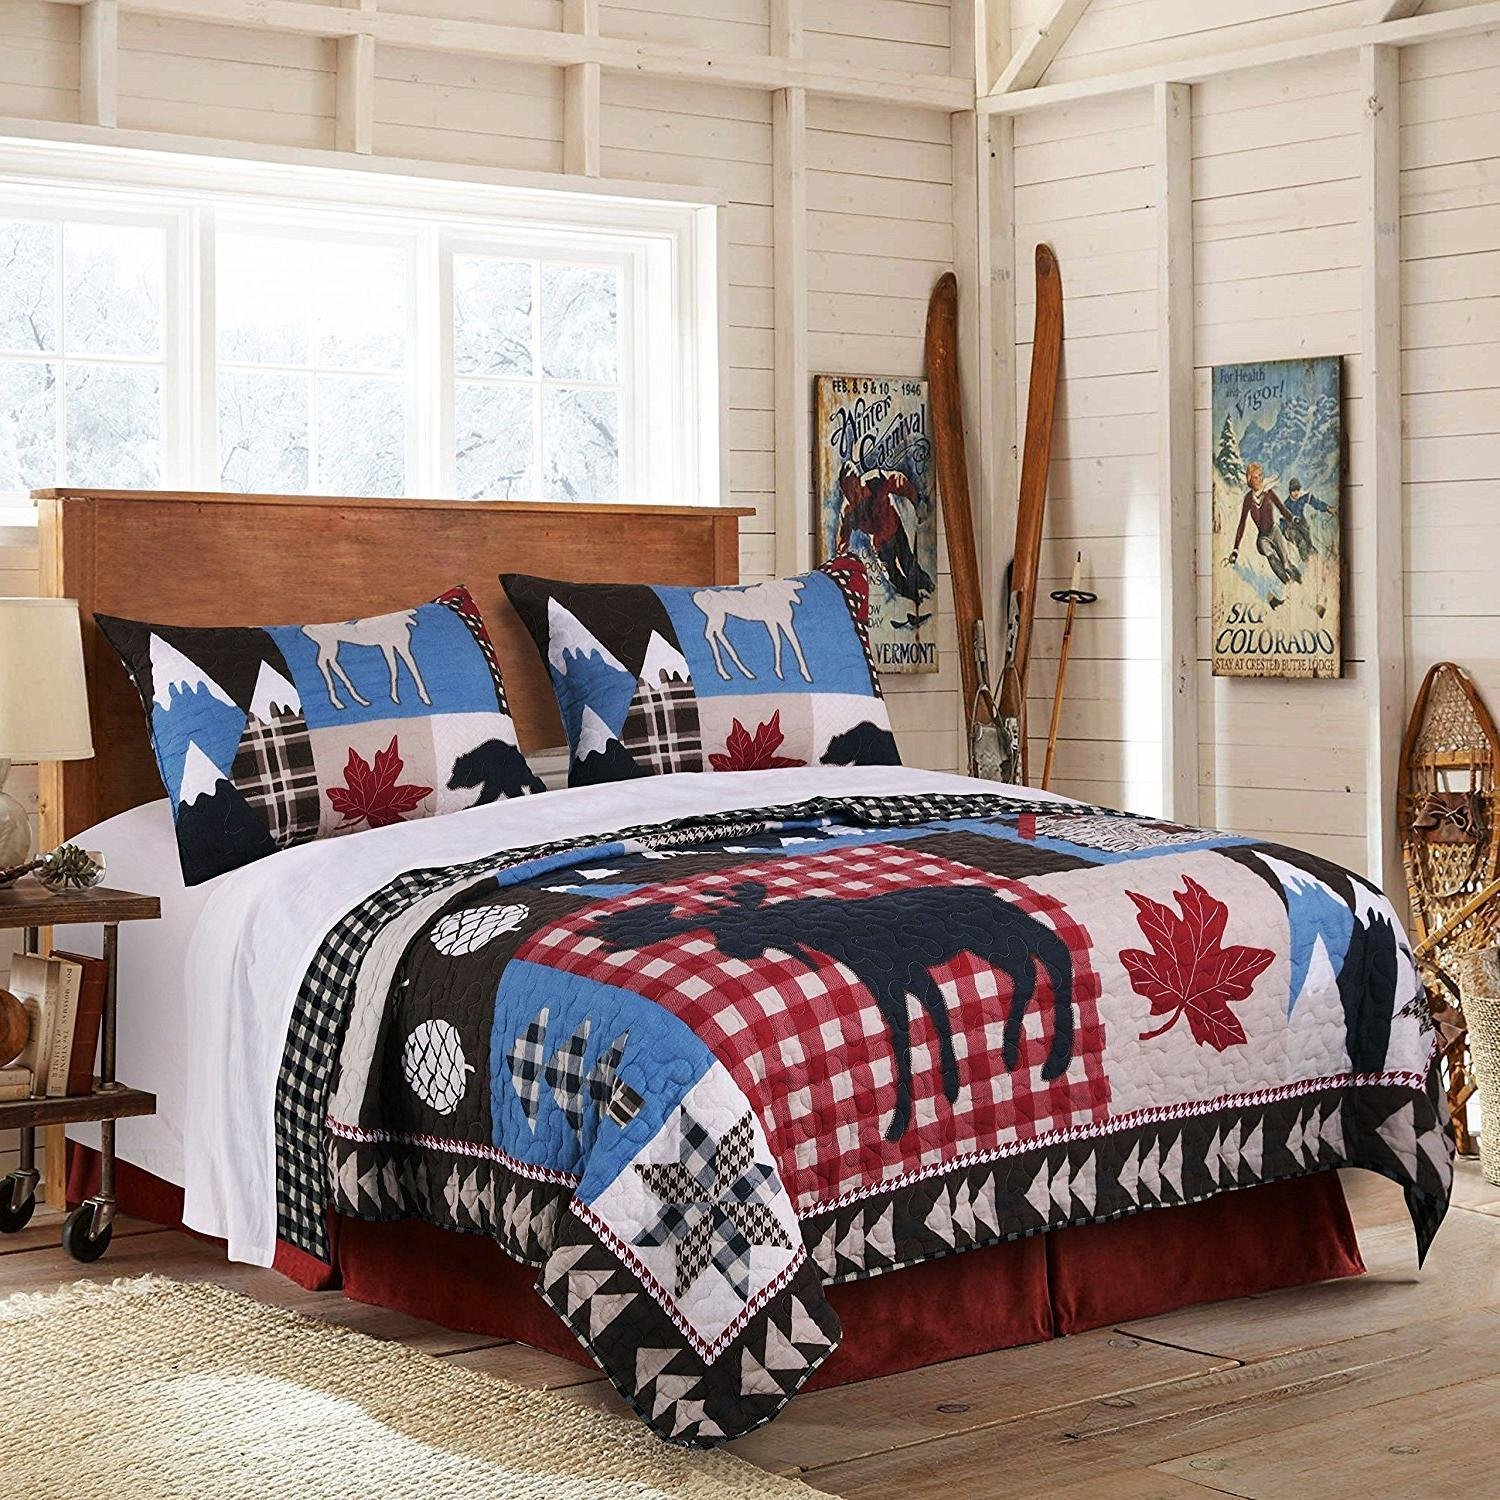 3pc Black Lodge Pattern Full Queen Size Quilt Set, Red White Checked Bedding Cabin Themed Lumberjack Country Hunting Blue Medium Warmth Squared Patchwork, Microfiber Polyester